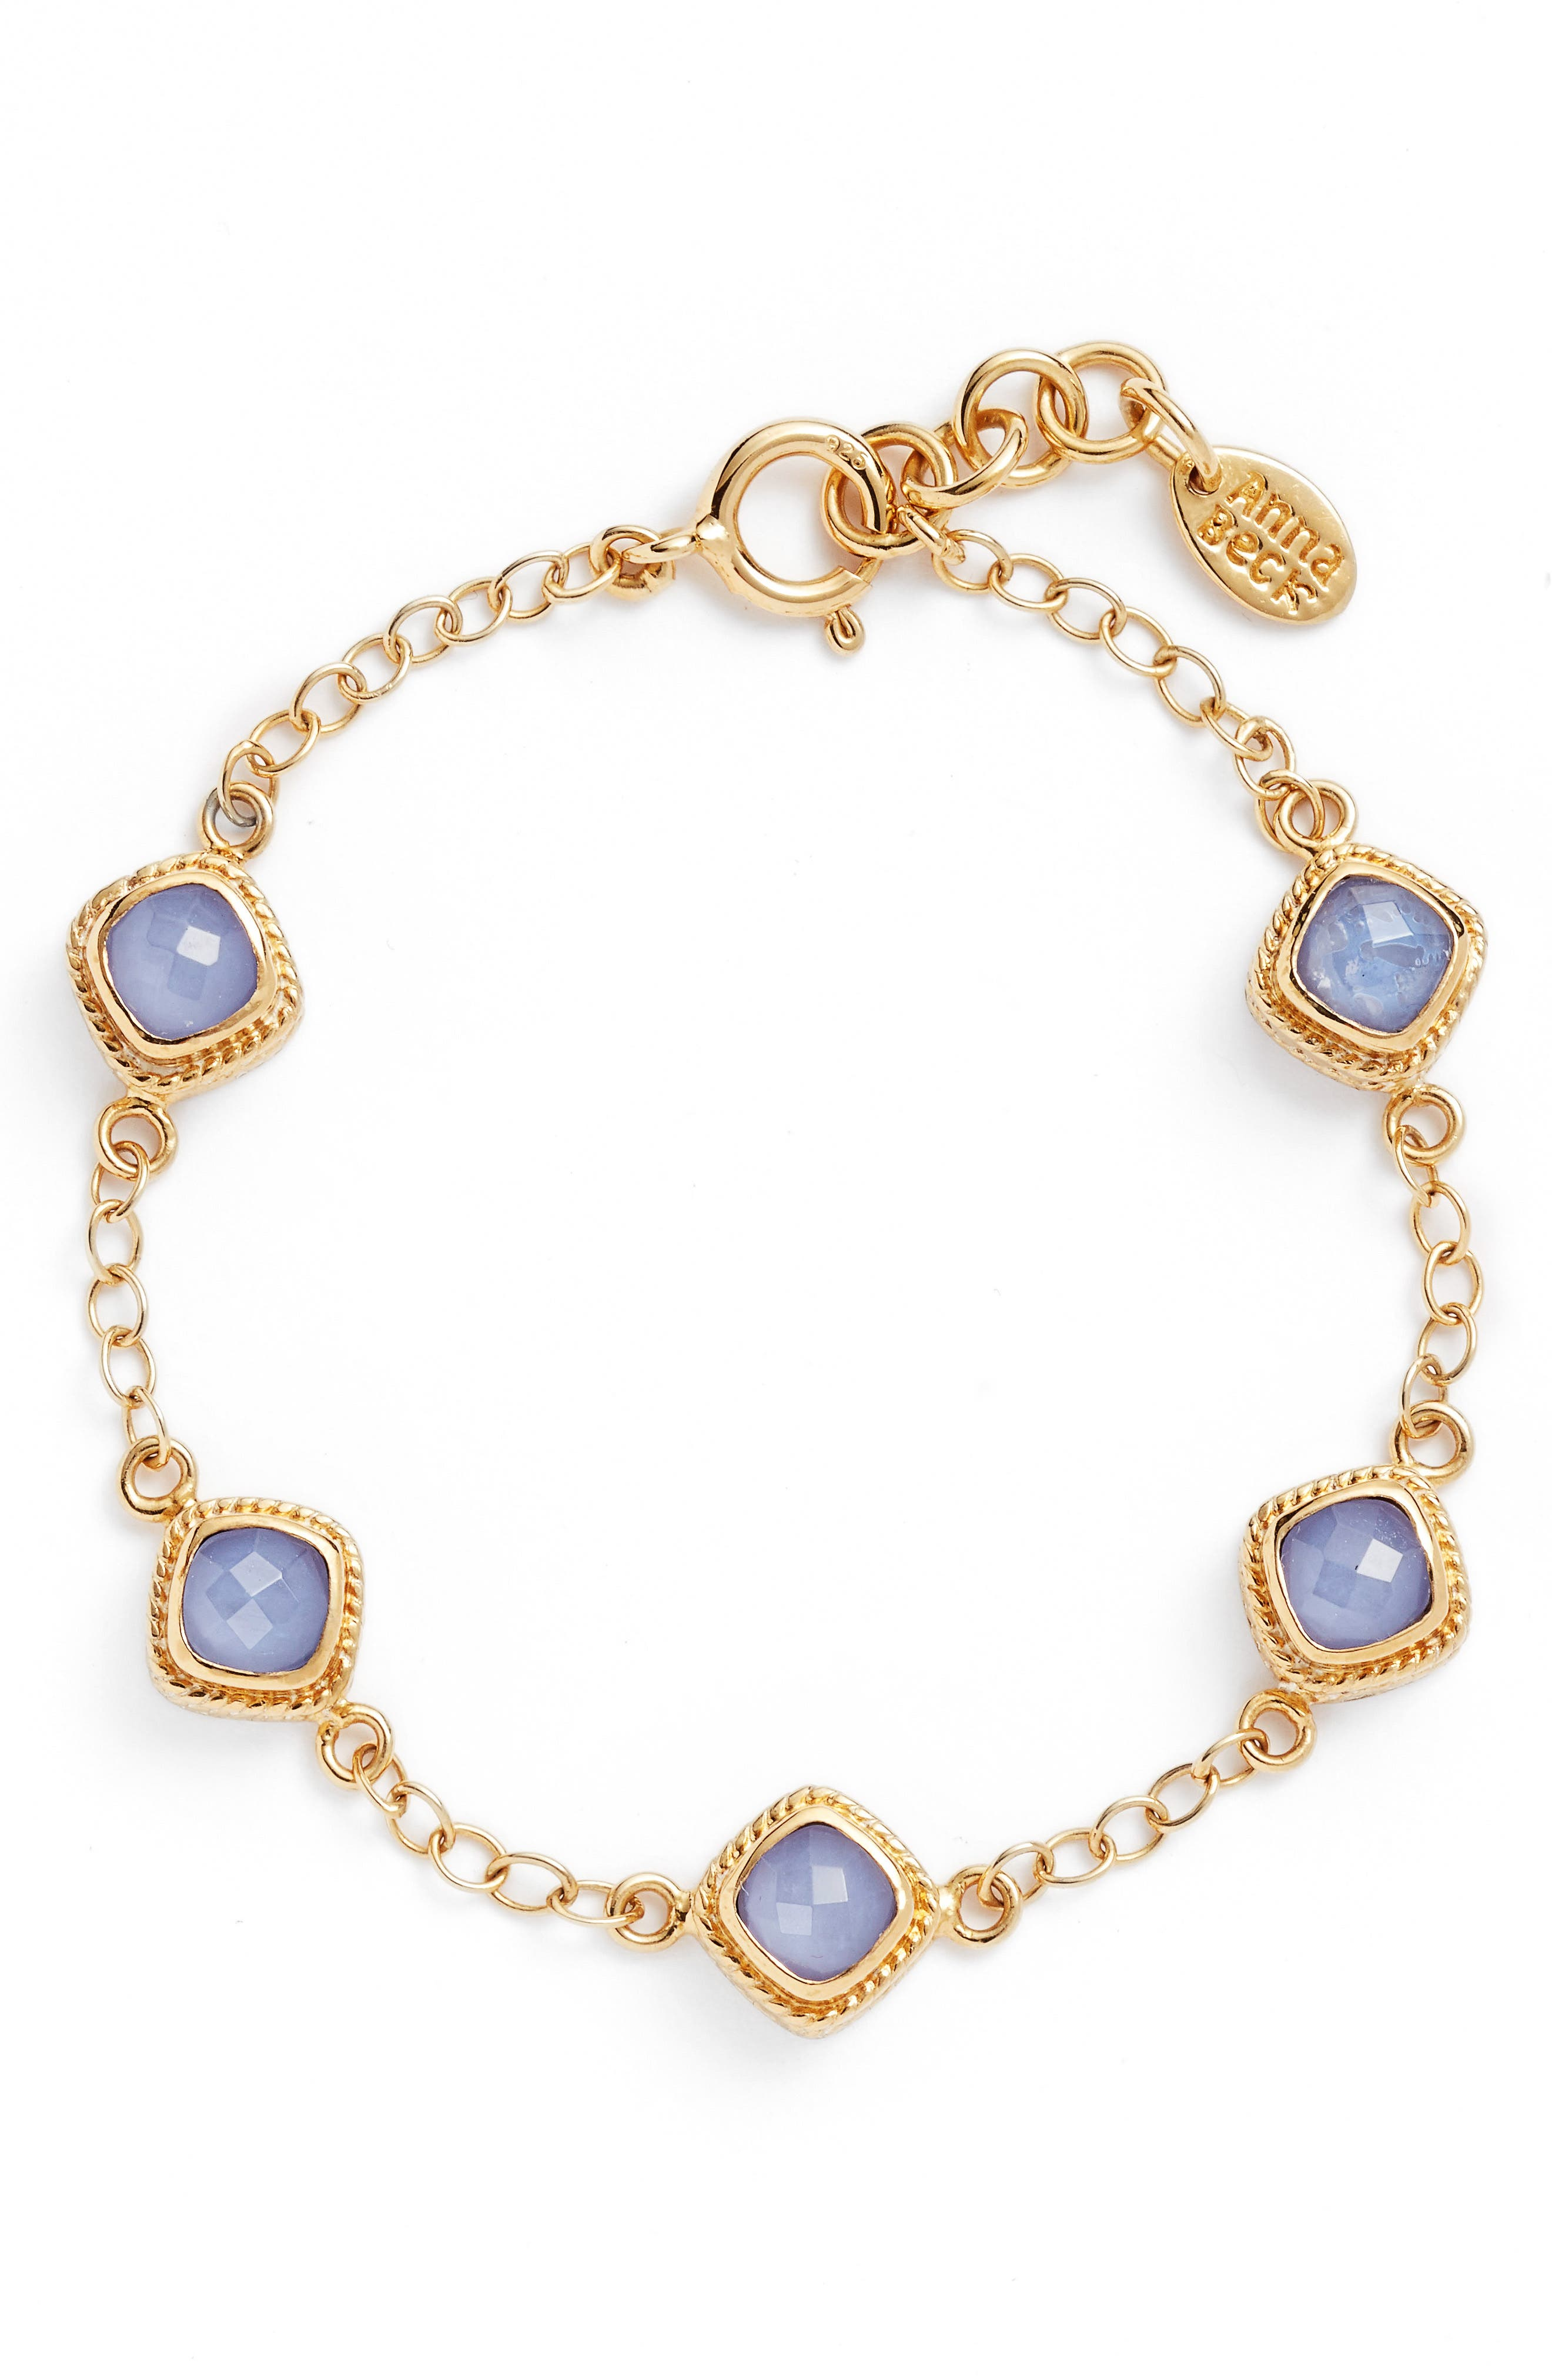 Station Bracelet,                             Main thumbnail 1, color,                             Gold/ Blue Chalcedony